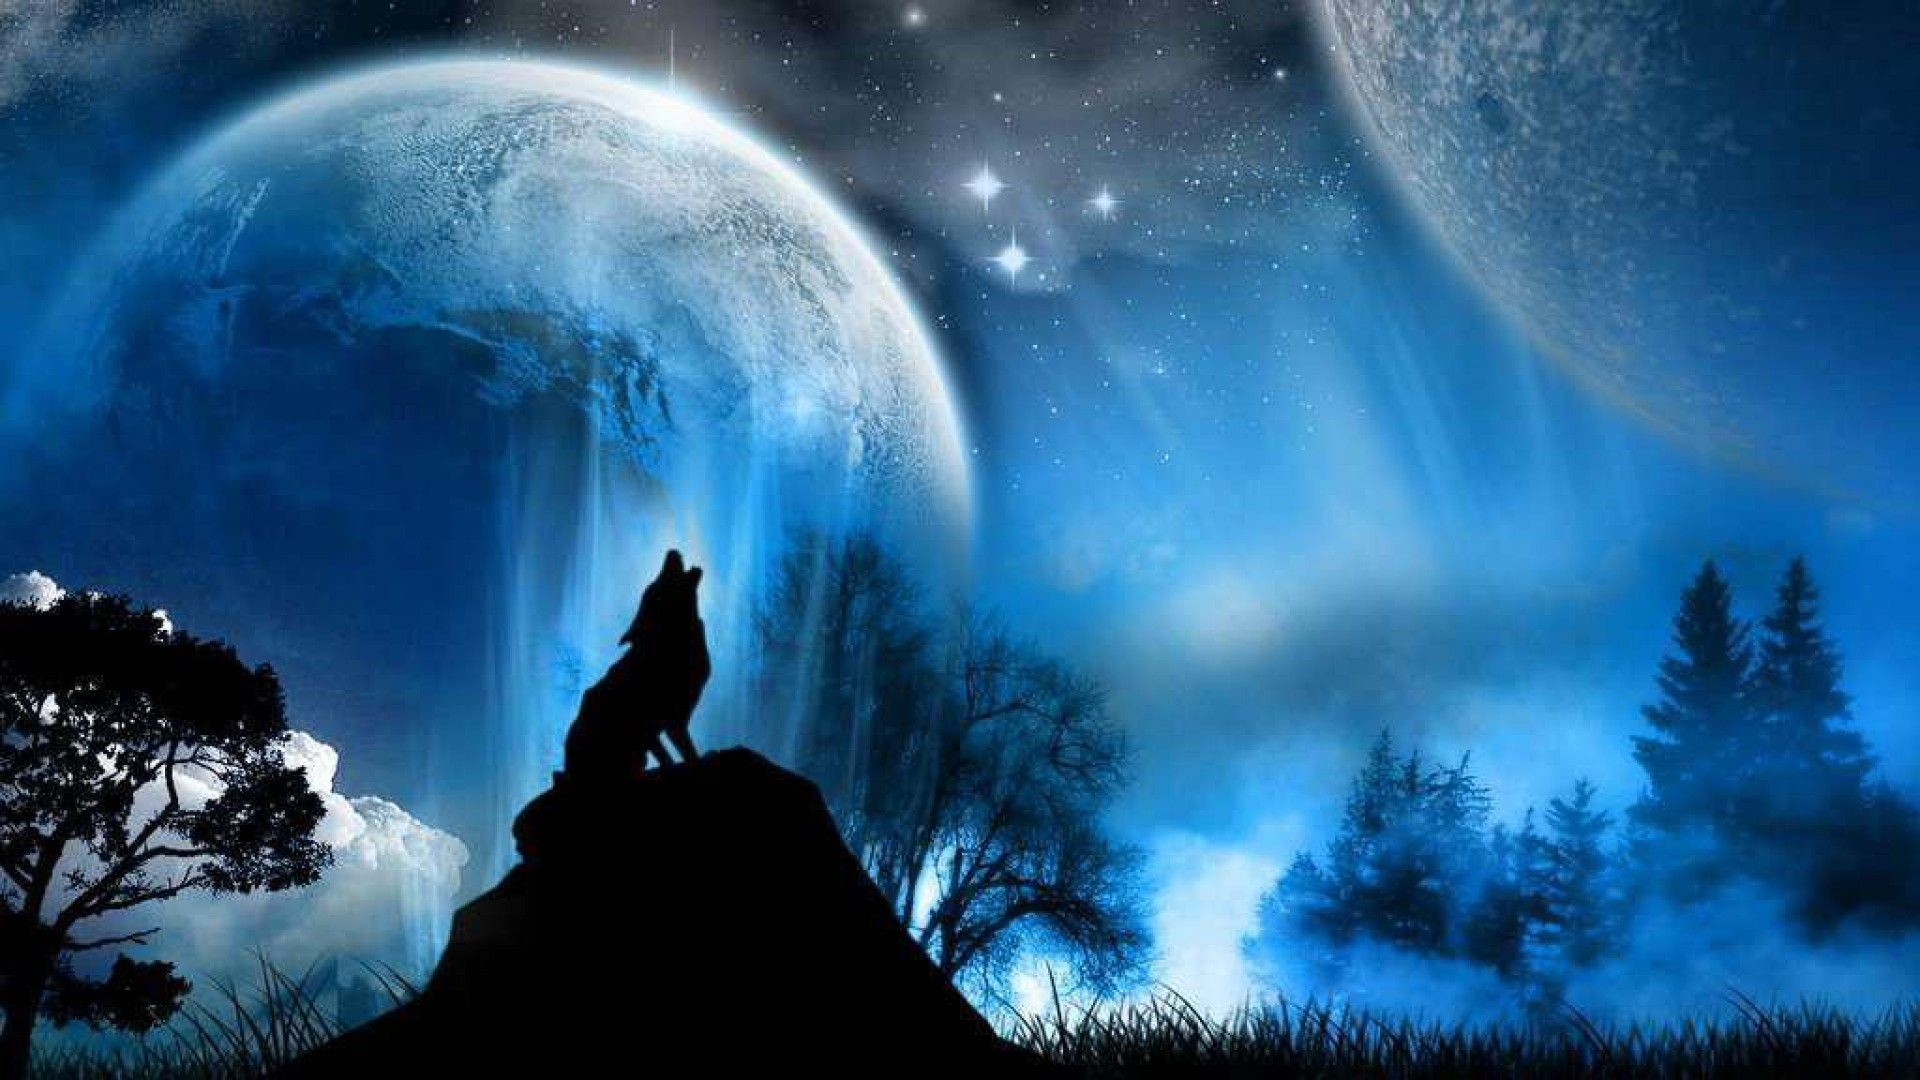 Res: 1920x1080, Only the best free epic wolf wallpapers you can find online! Epic wolf  wallpapers and background images for desktop, iPhone, Android and any  screen ...